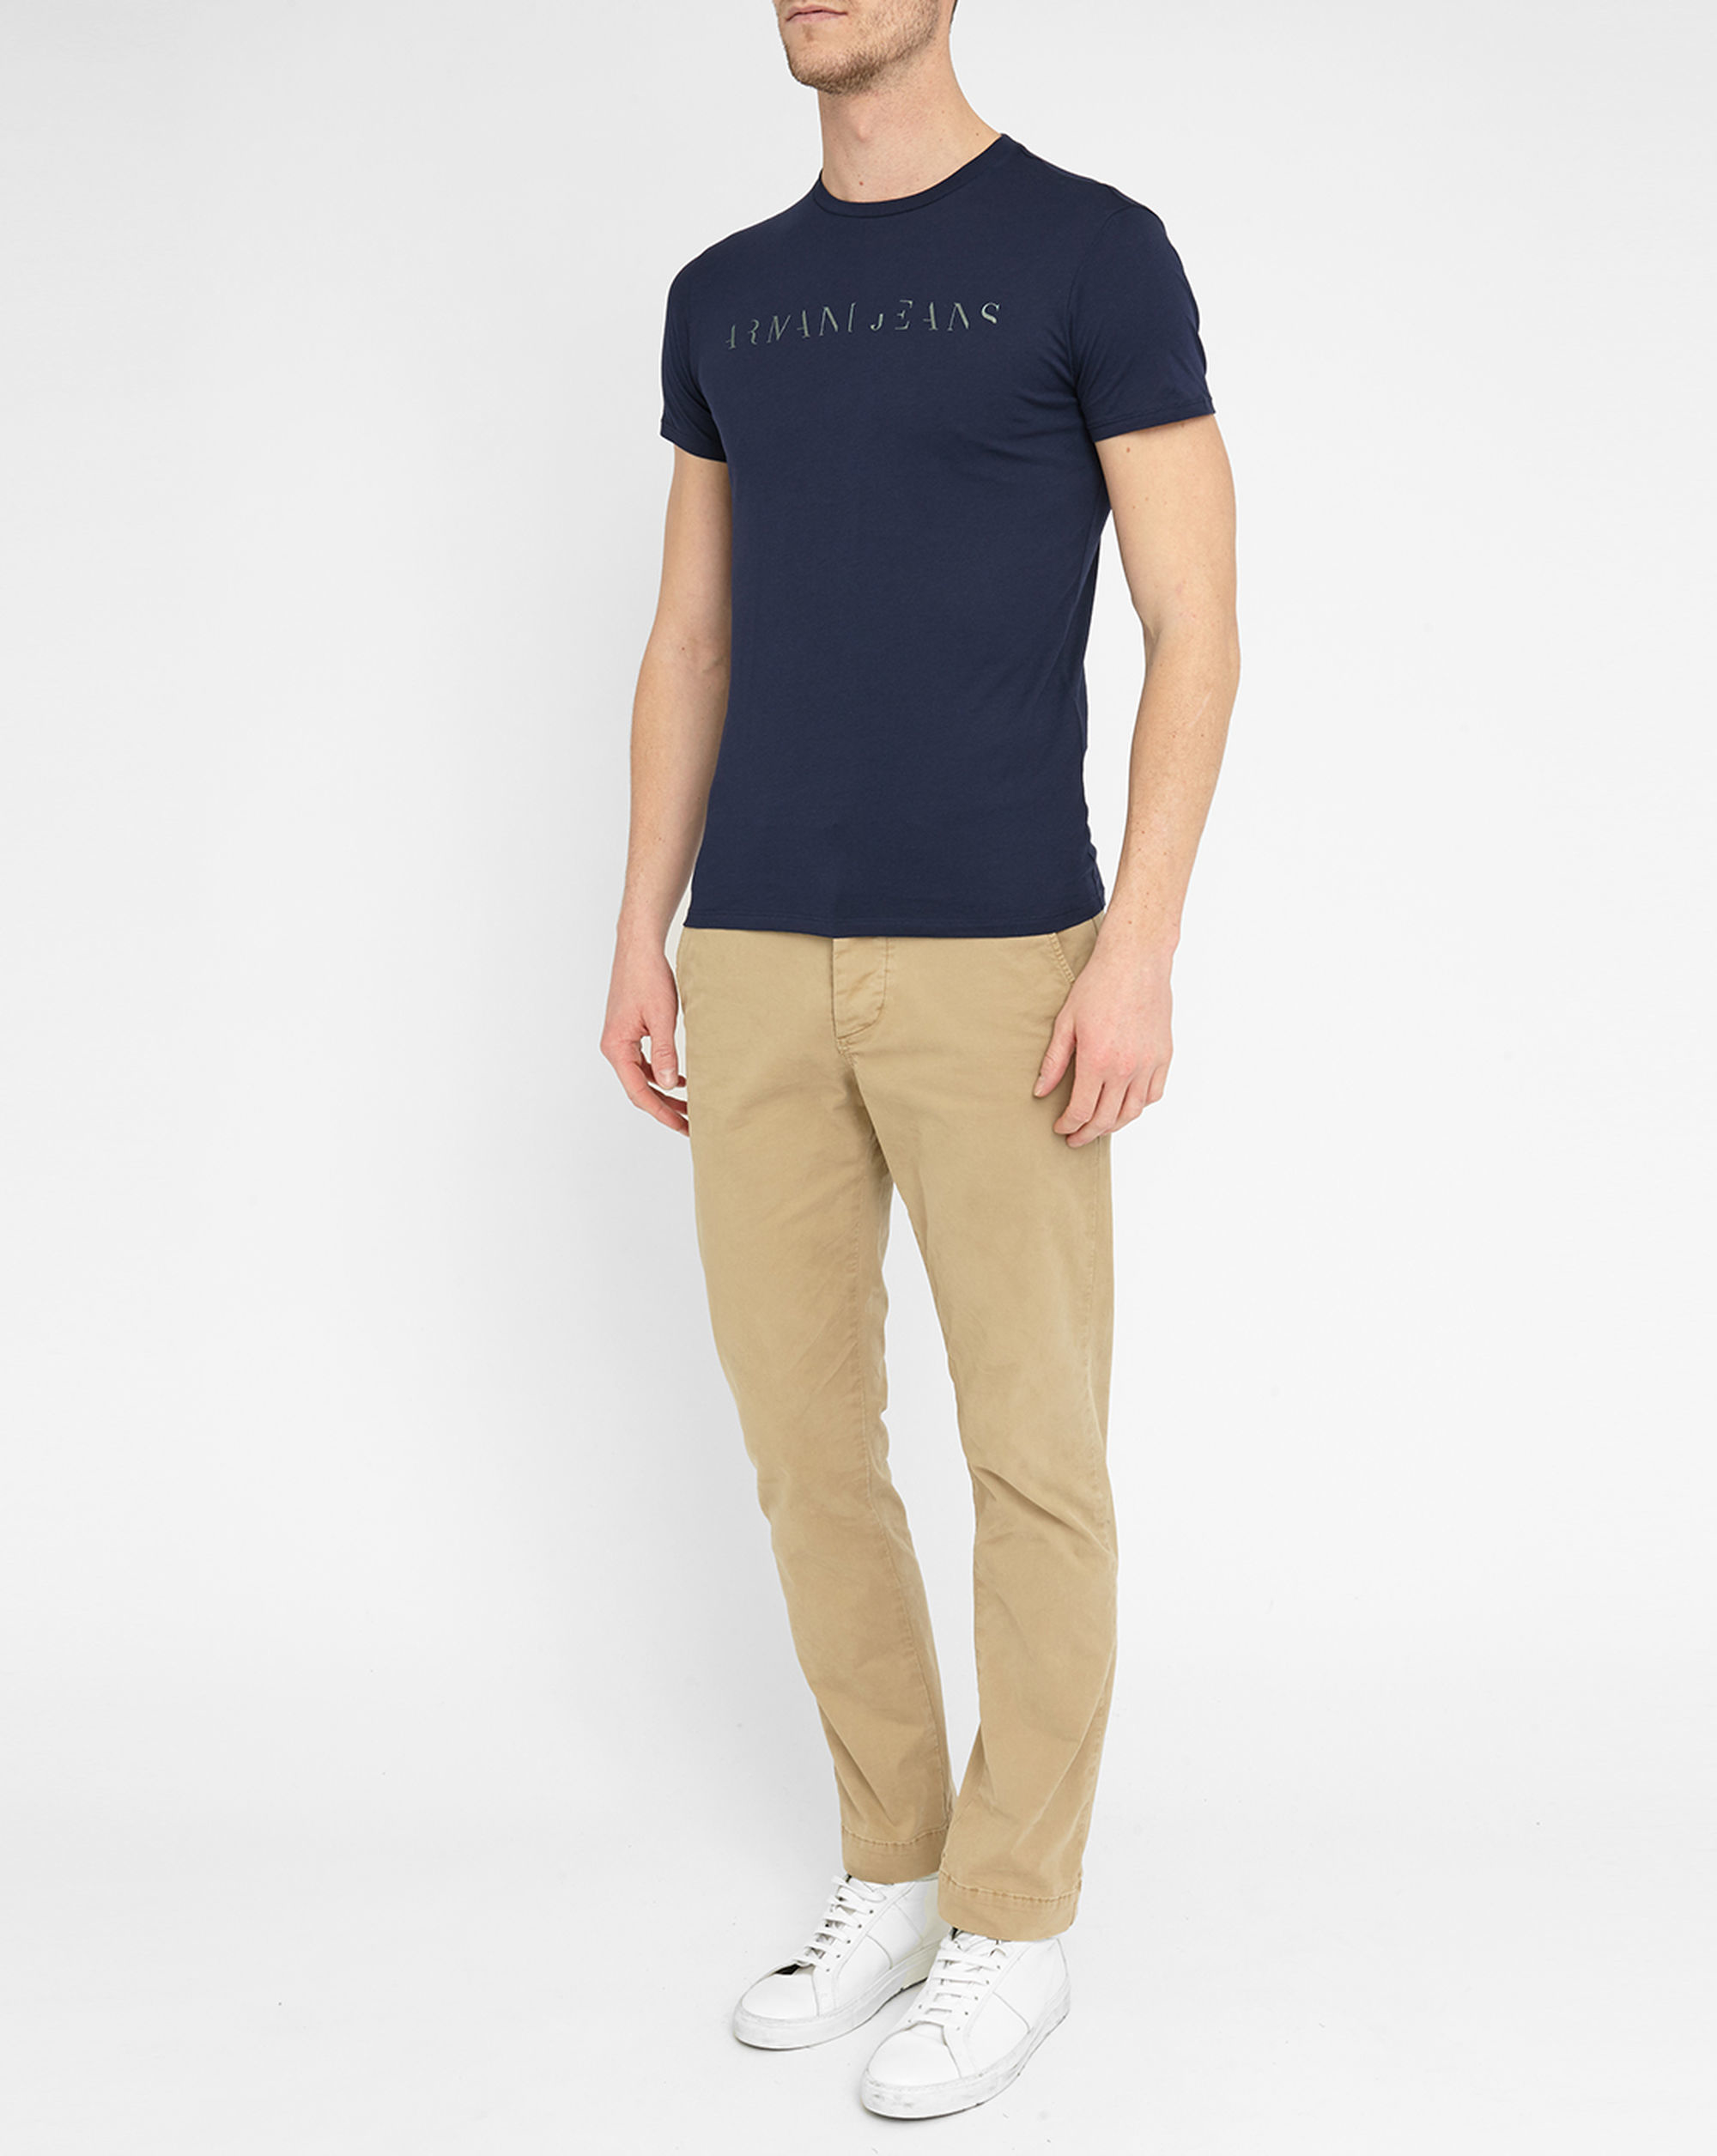 Armani Jeans Navy Round Neck T Shirt In Blue For Men Lyst